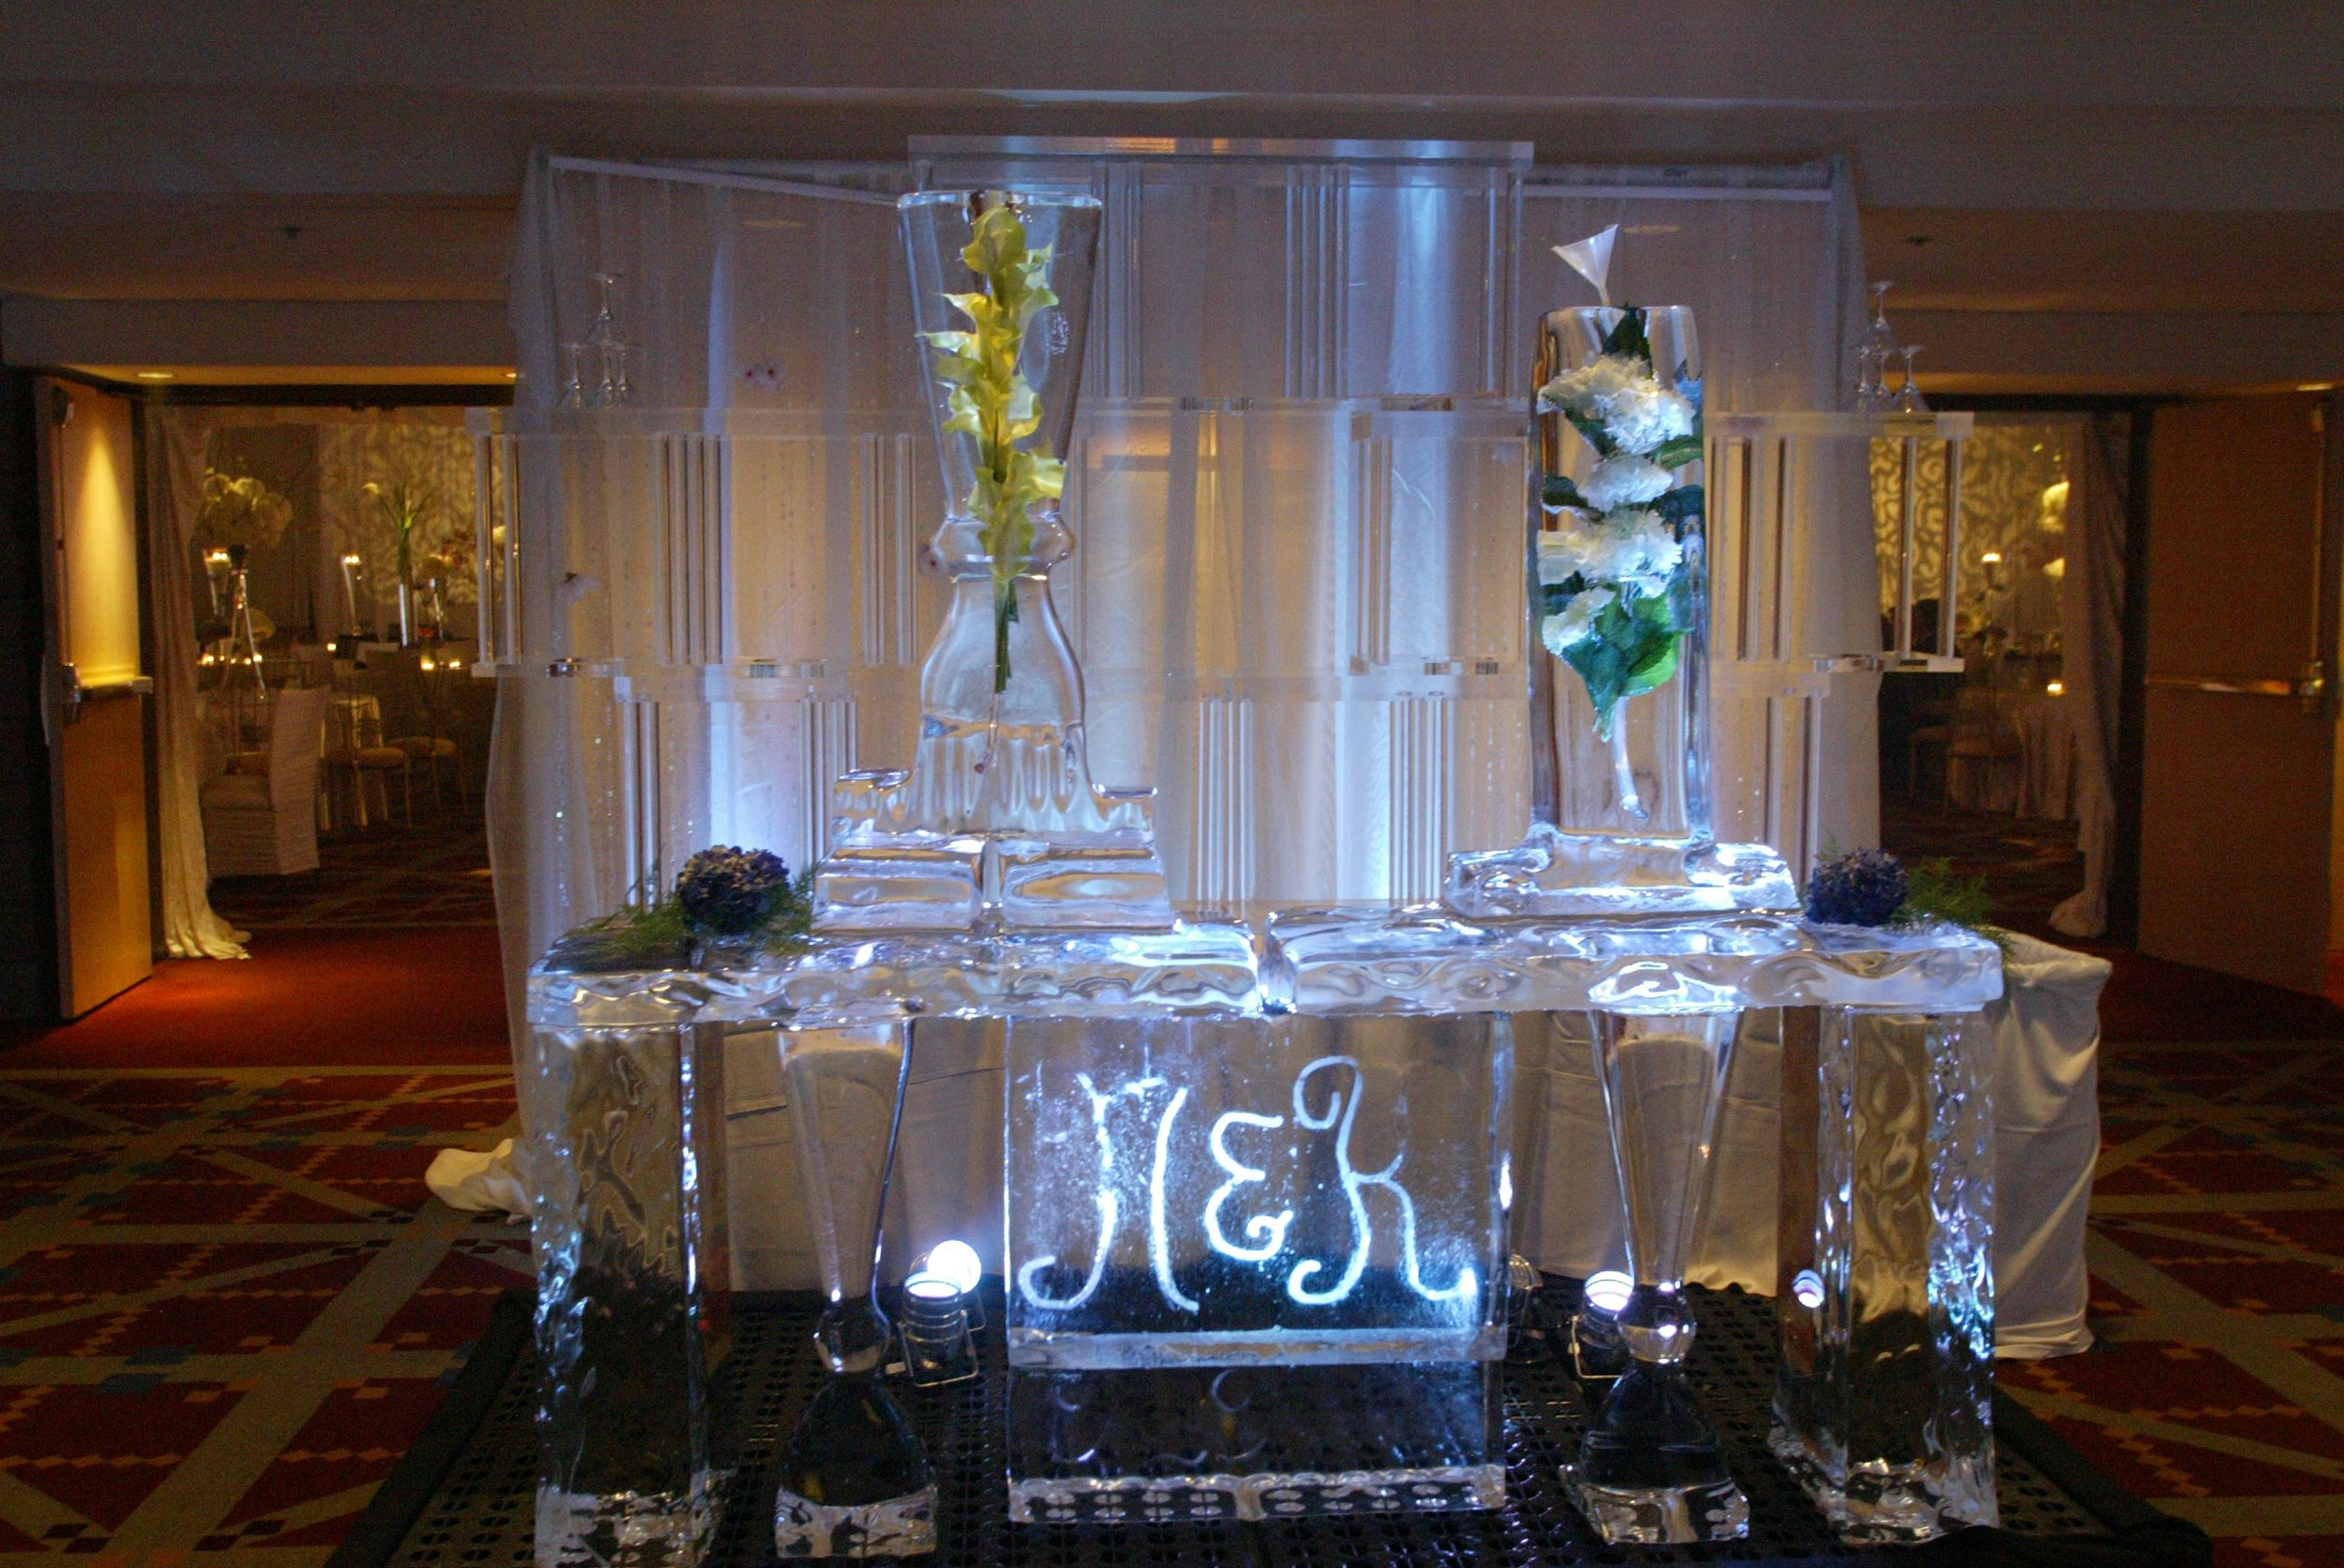 initials carved into ice sculpture at wedding